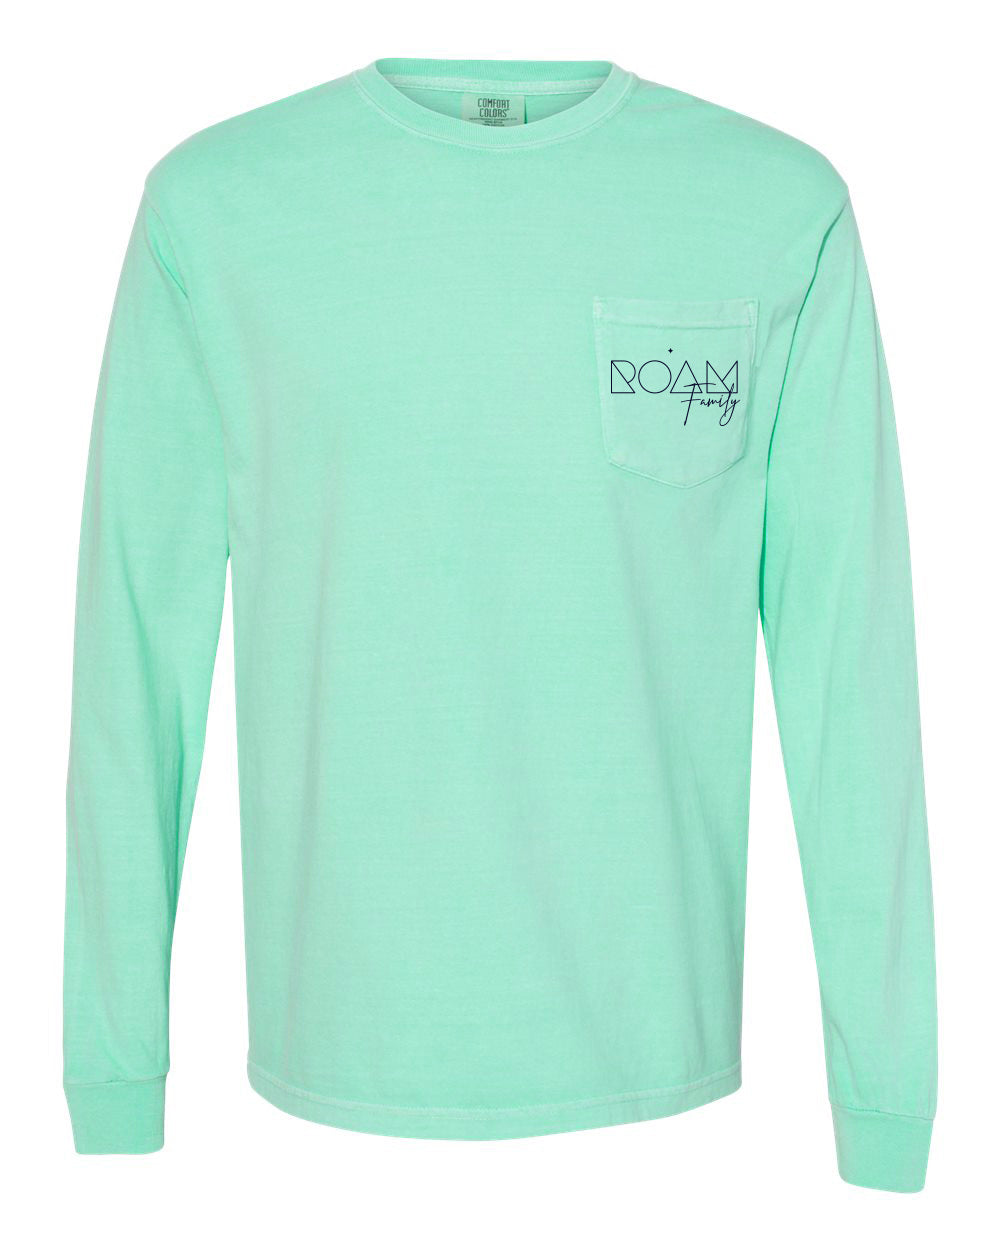 Family Pocket Long Sleeve - <br> Island Reef